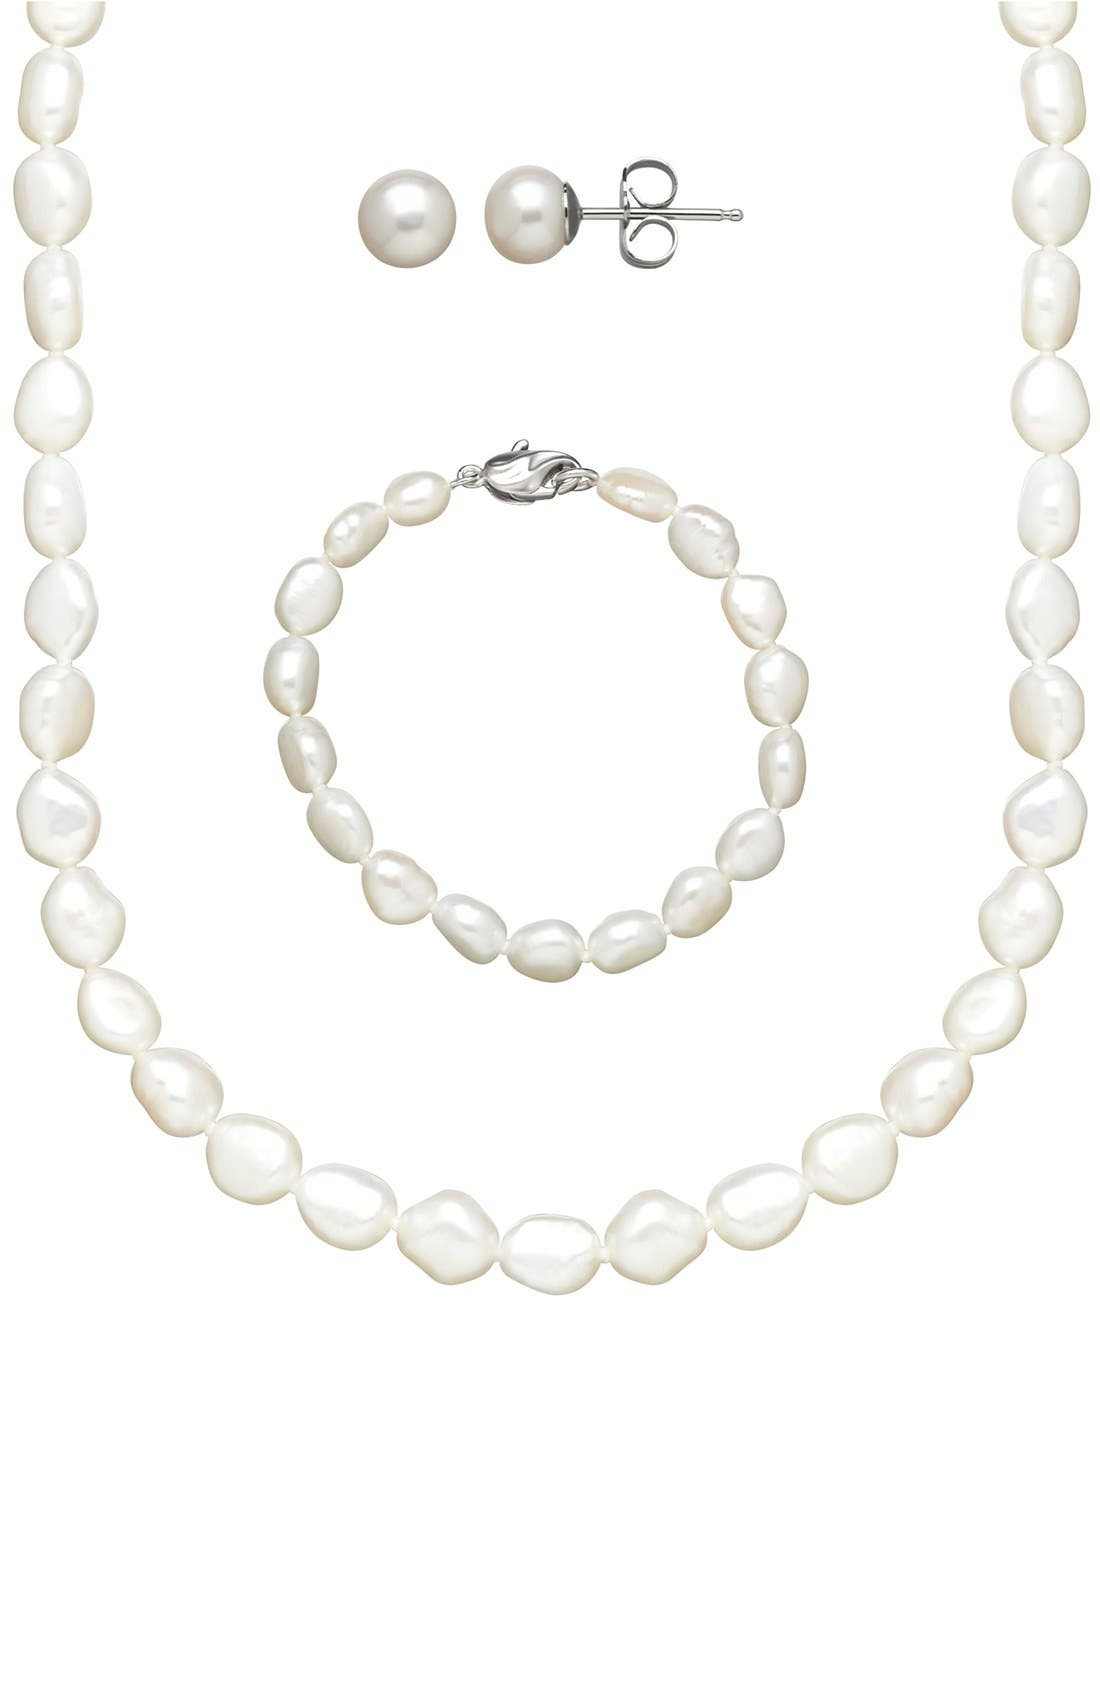 HONORA Freshwater Pearl Necklace, Bracelet & Earrings (Girls)